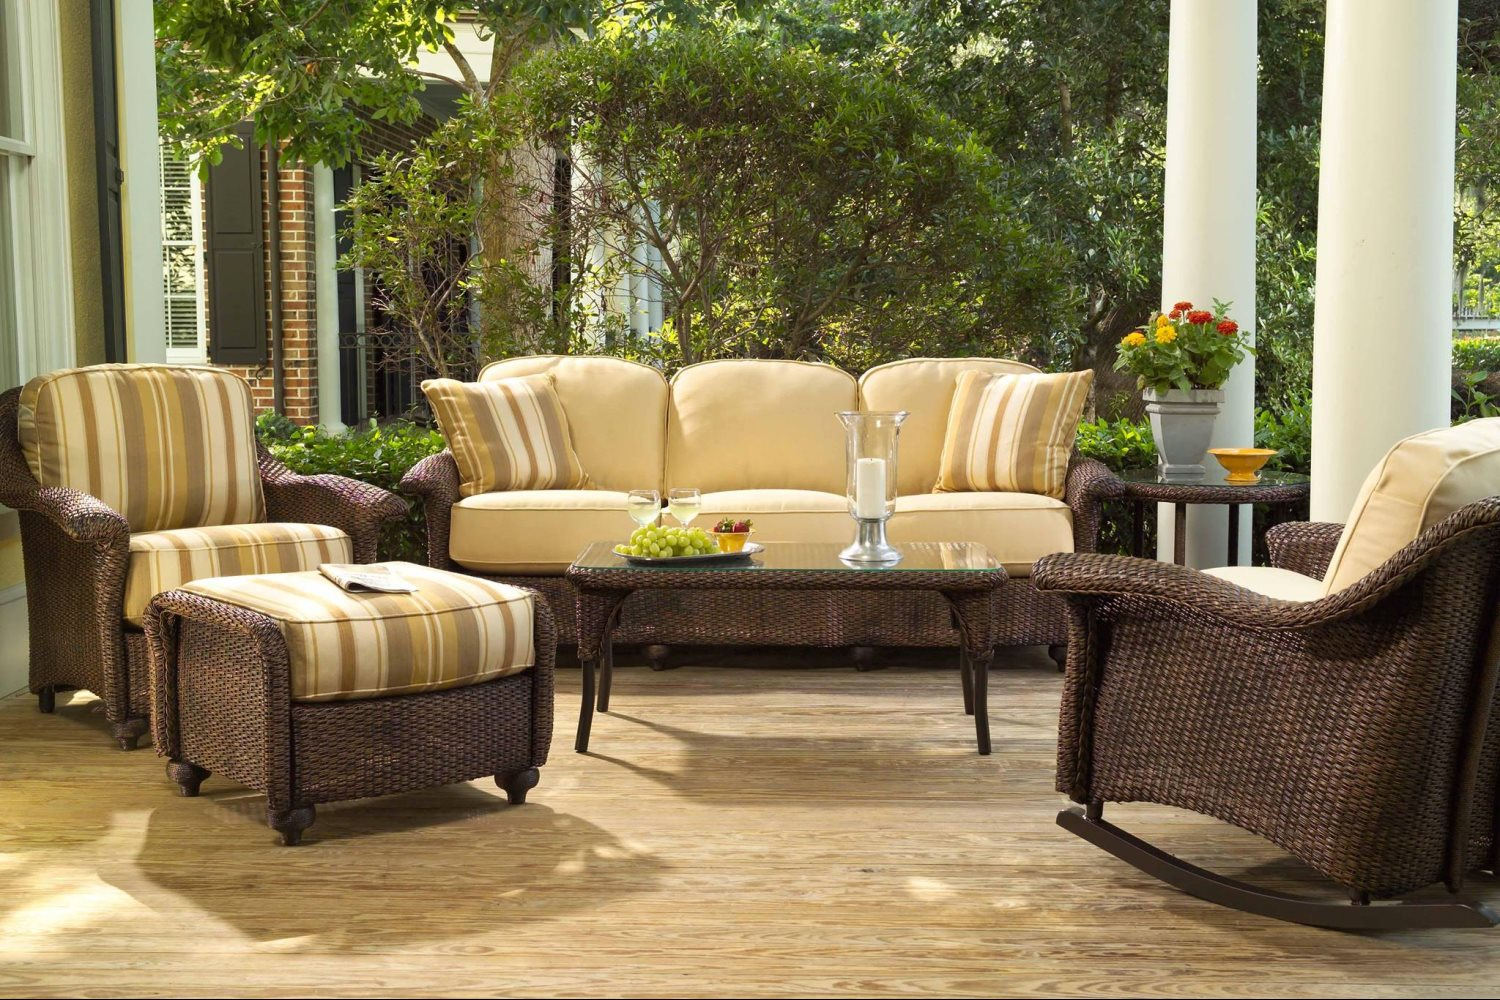 Patio furniture outdoor seating dining patio for Terrace furniture